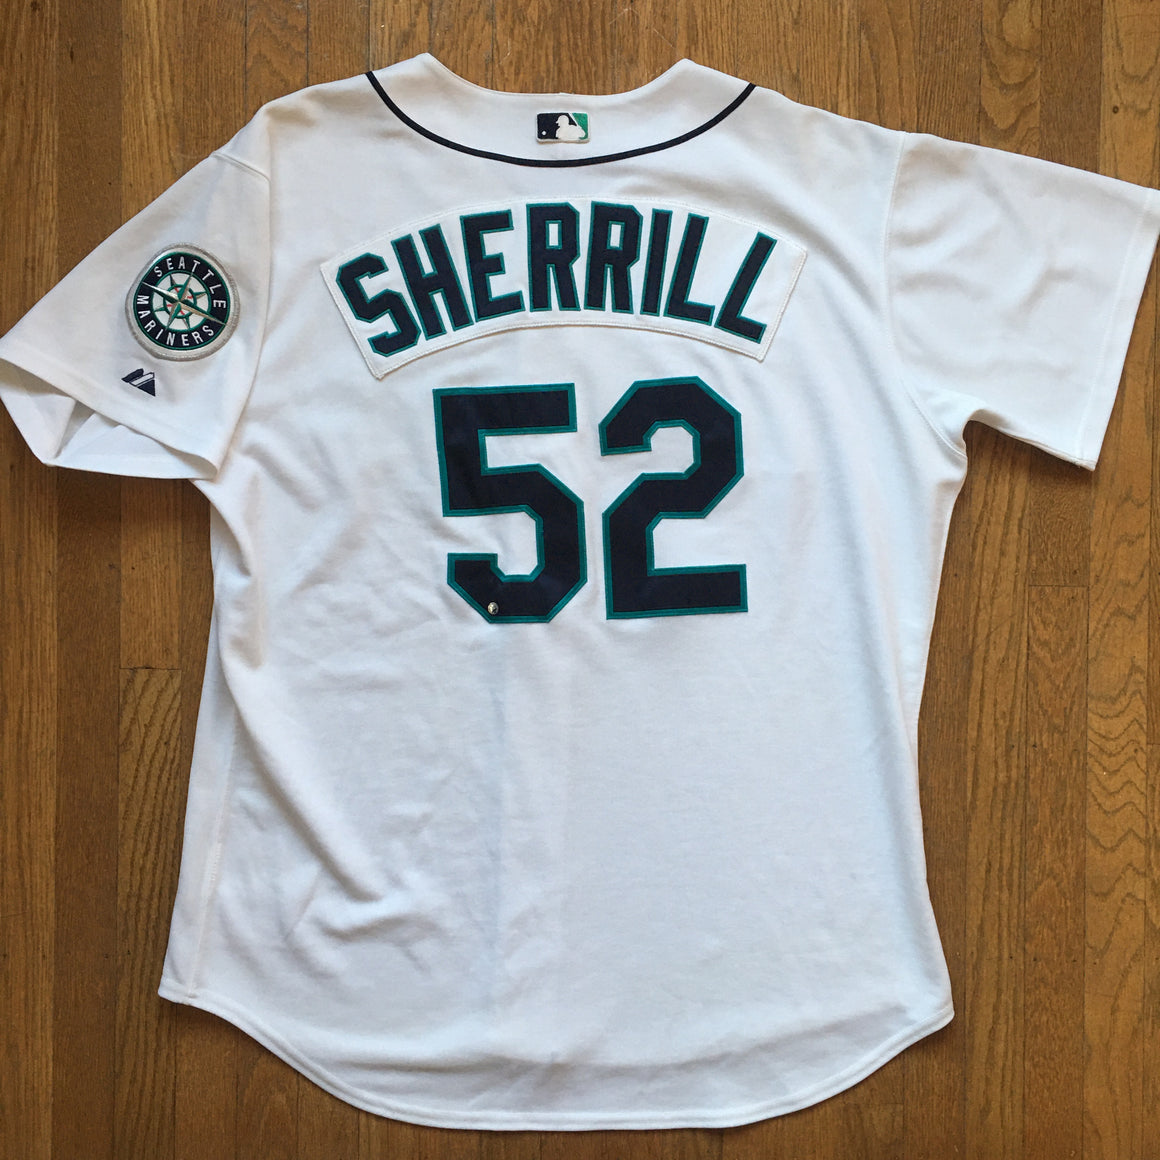 Authentic Seattle Mariners George Sherrill jersey - 52 / 2XL